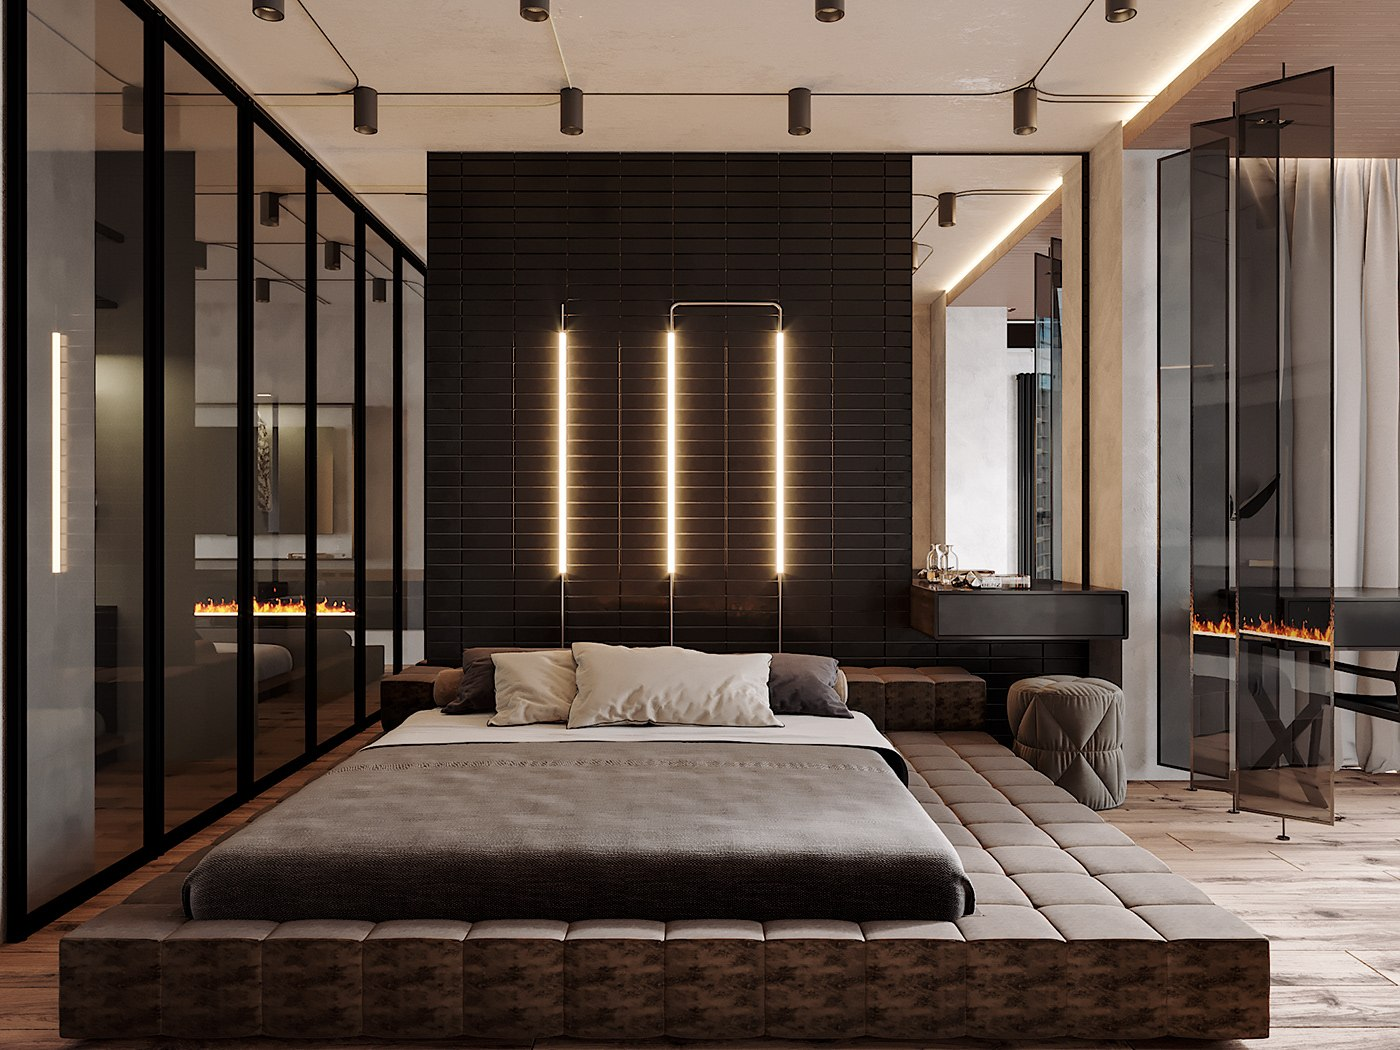 Japanese minimalism for real bedroom with log platform bed, glass wall and dark wooden background